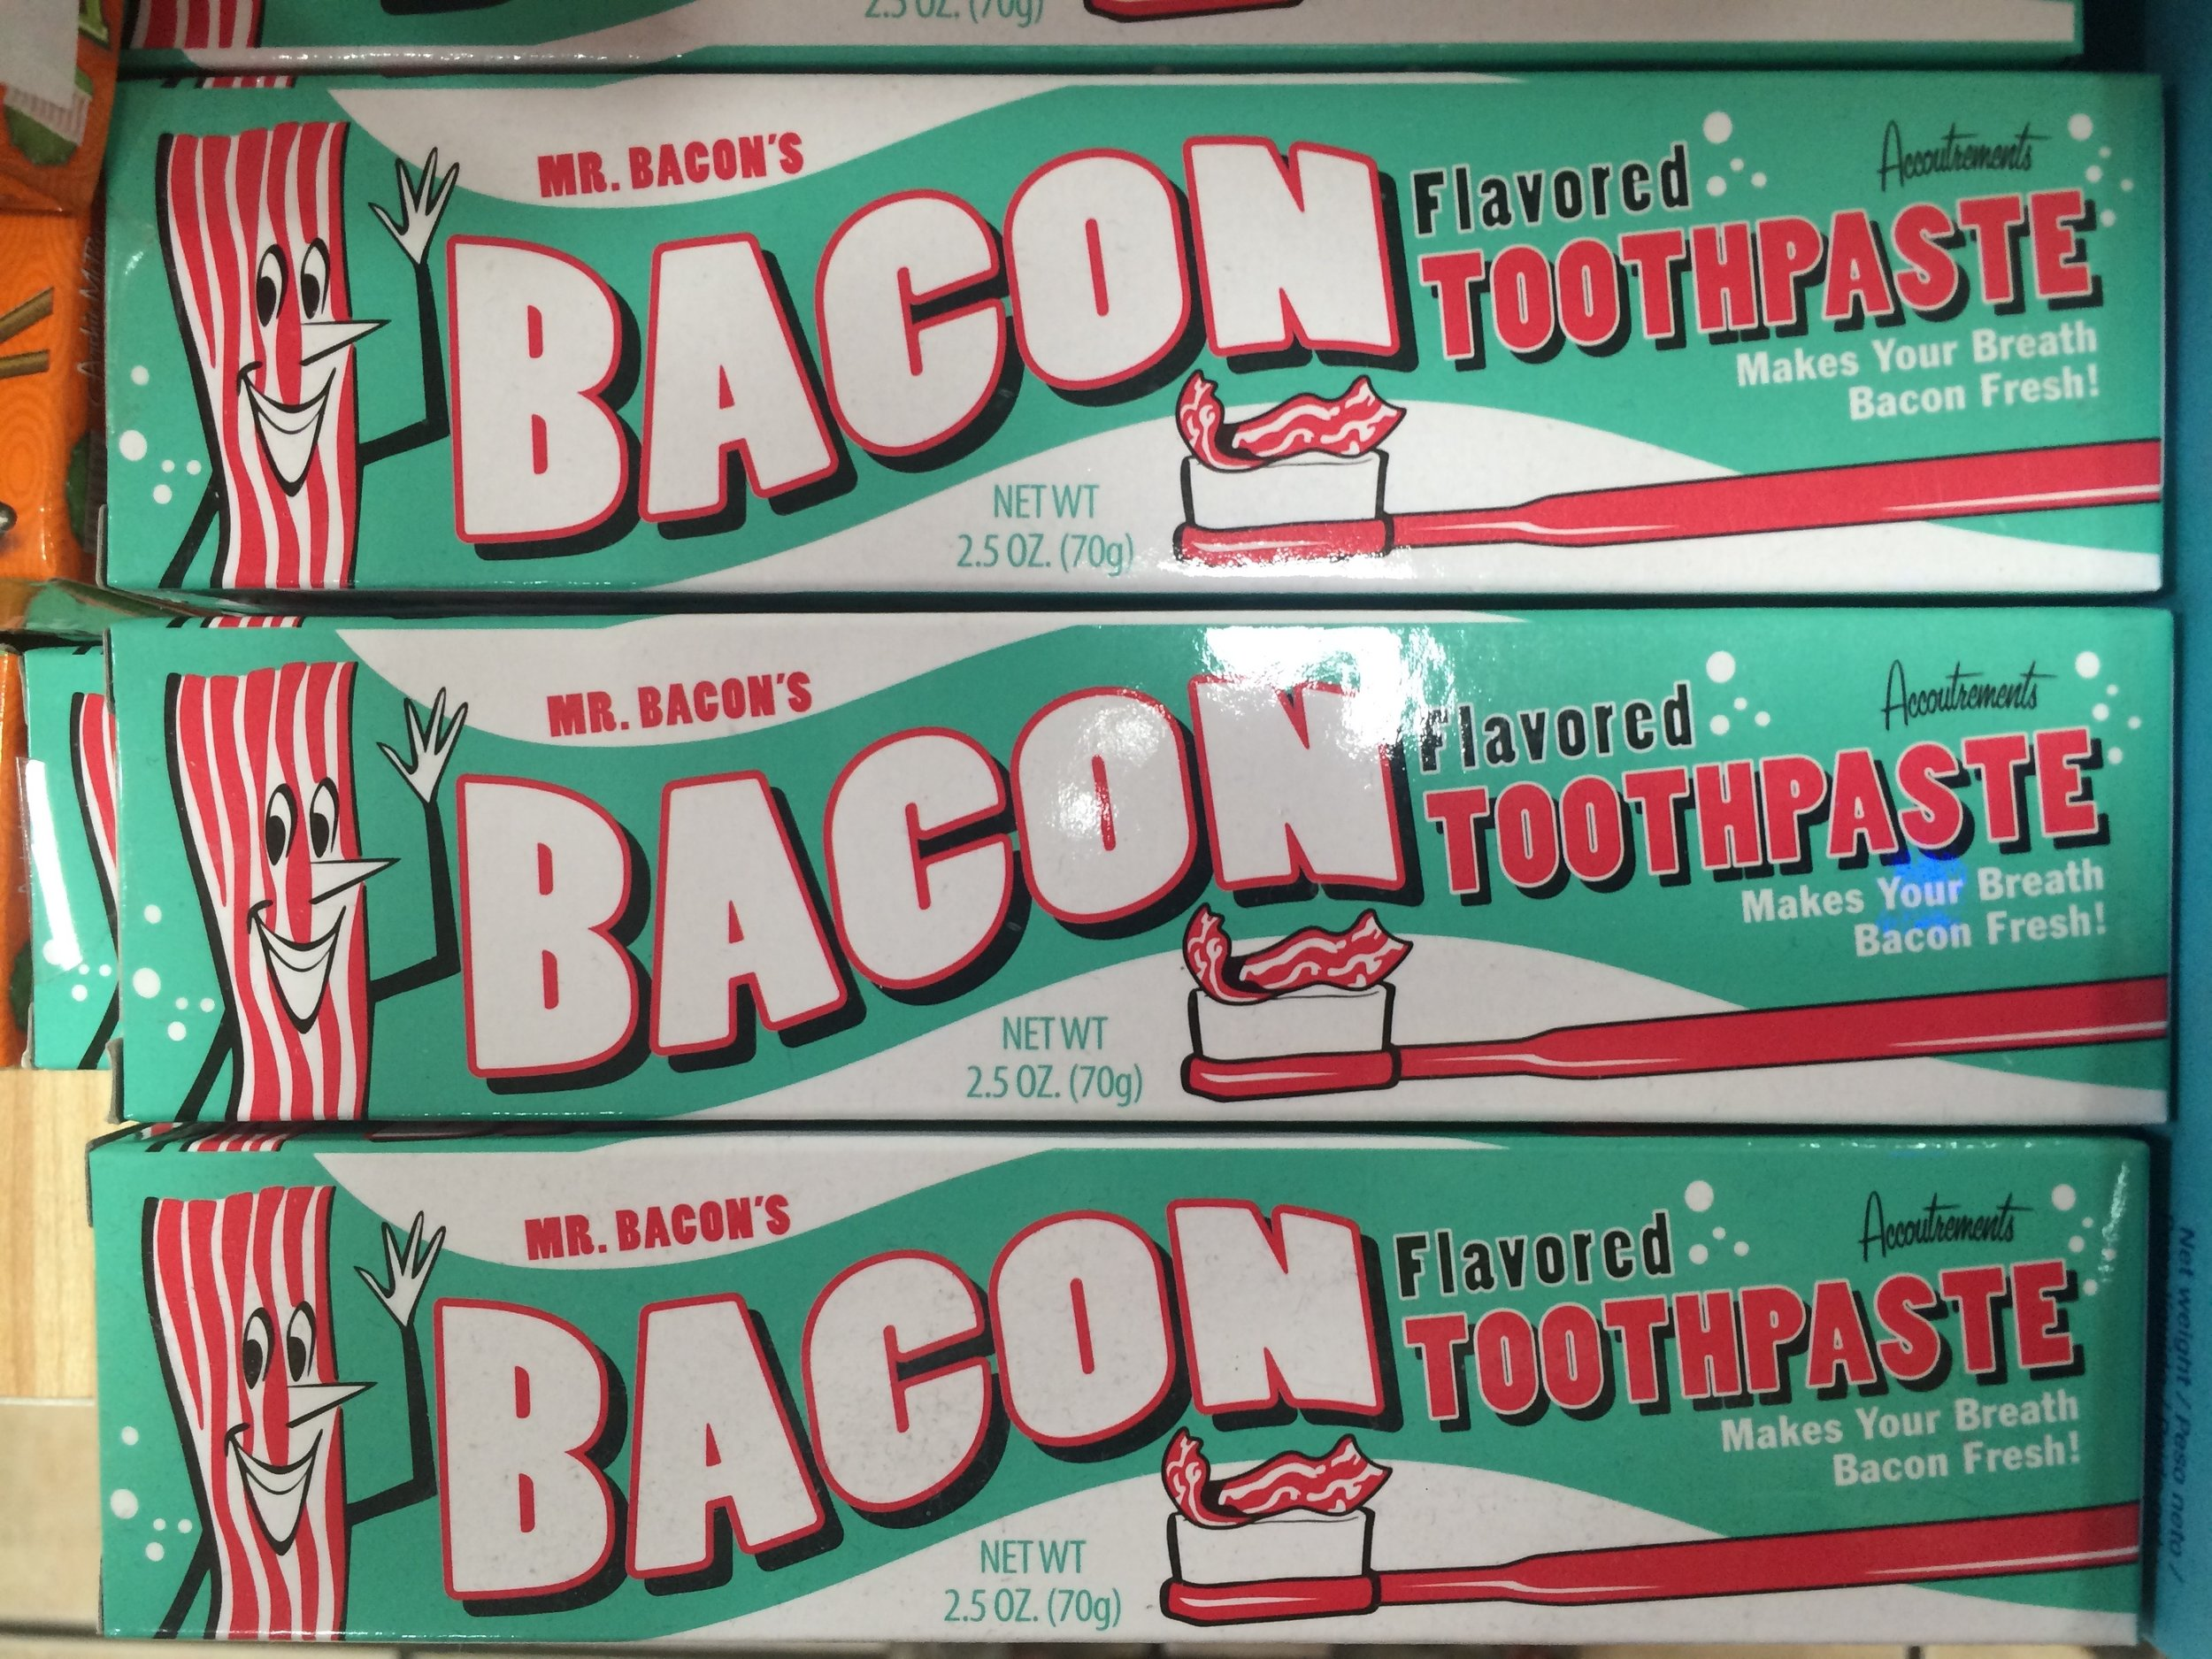 Baker Bacon Toothpaste - no, I didn't try it, or eat it.